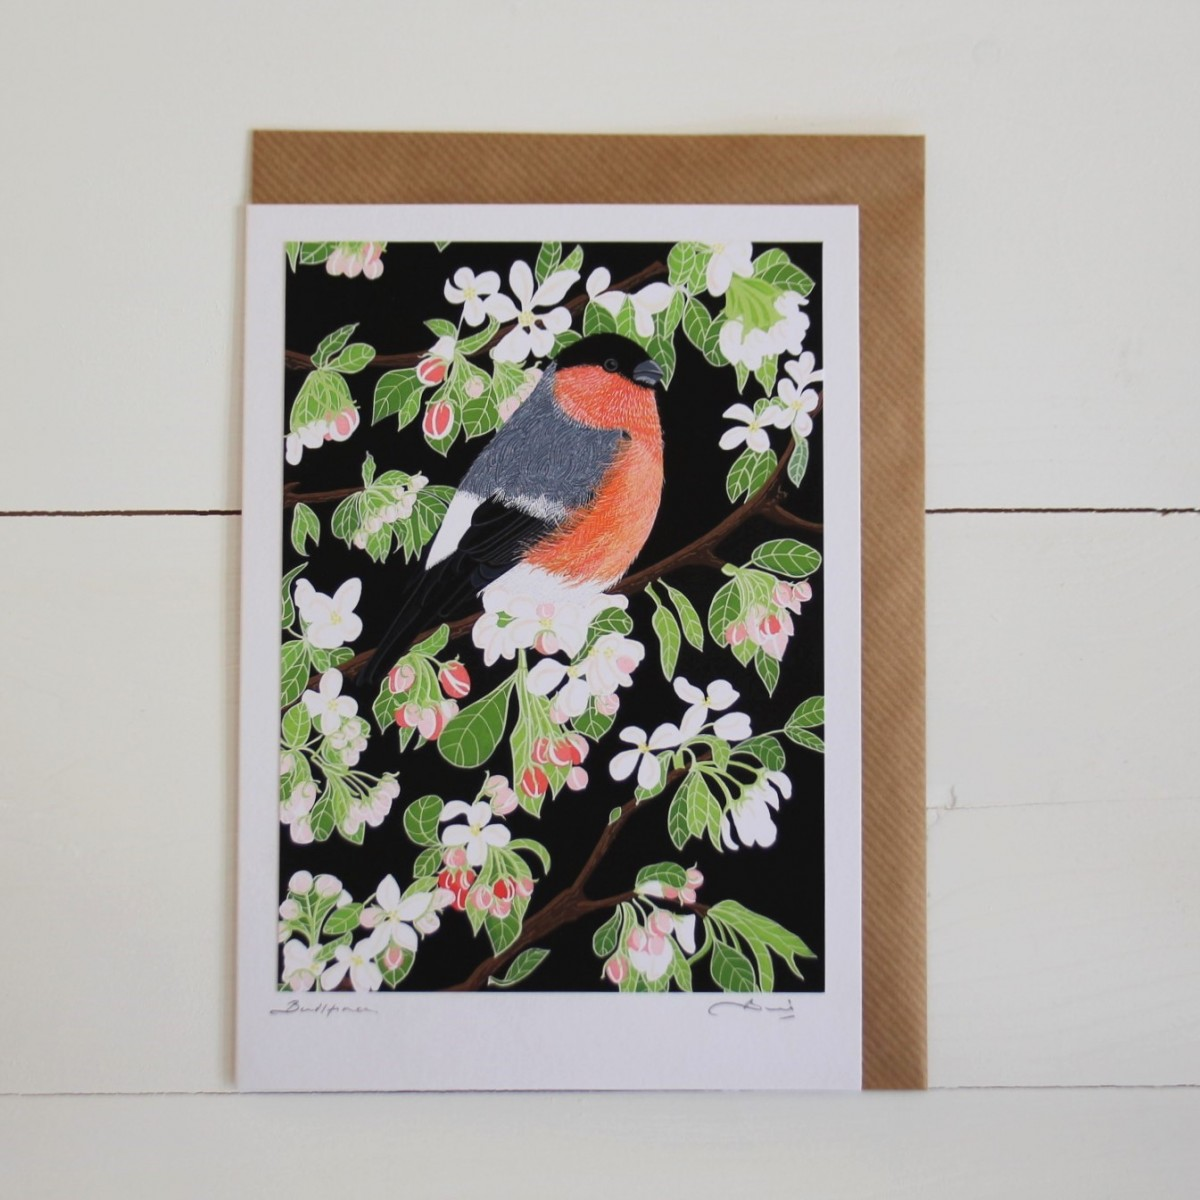 Bullfinch Bird Flower Handmade Hand Titled And Signed Greeting Card A5